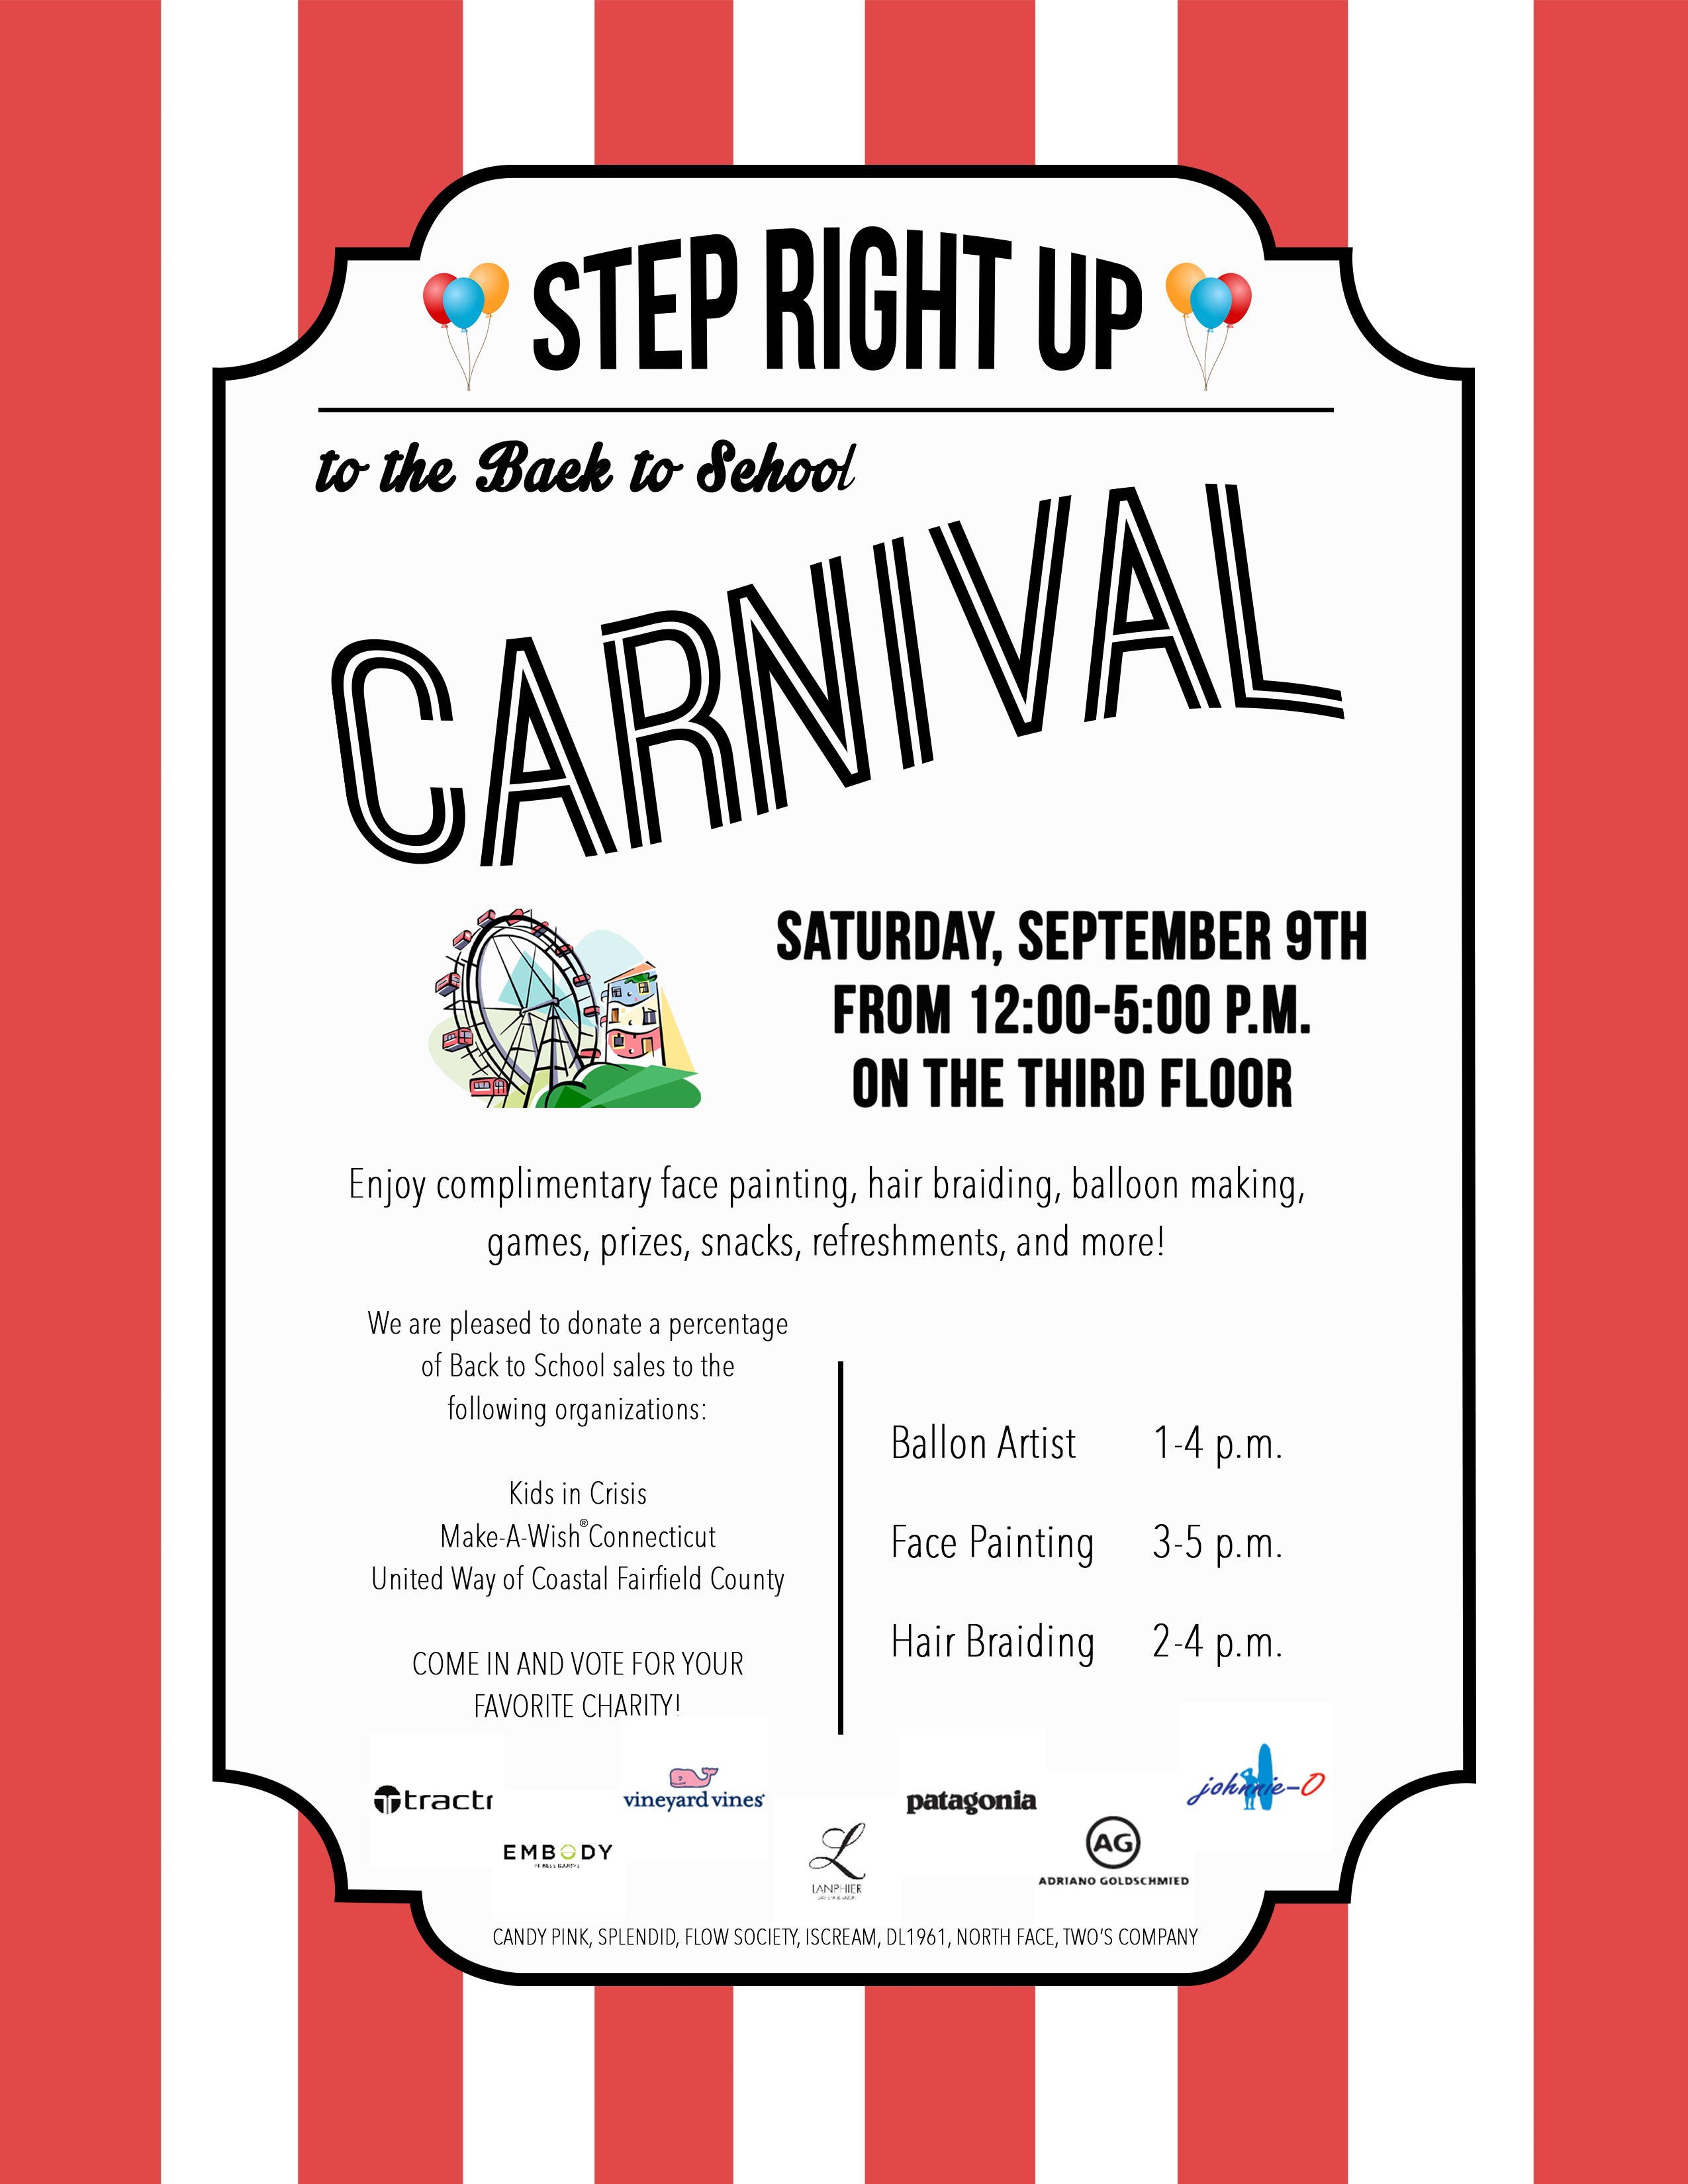 Carnival to benefit Kids in Crisis, Make-A-Wish Connecticut and United Way of Coastal Fairfield County